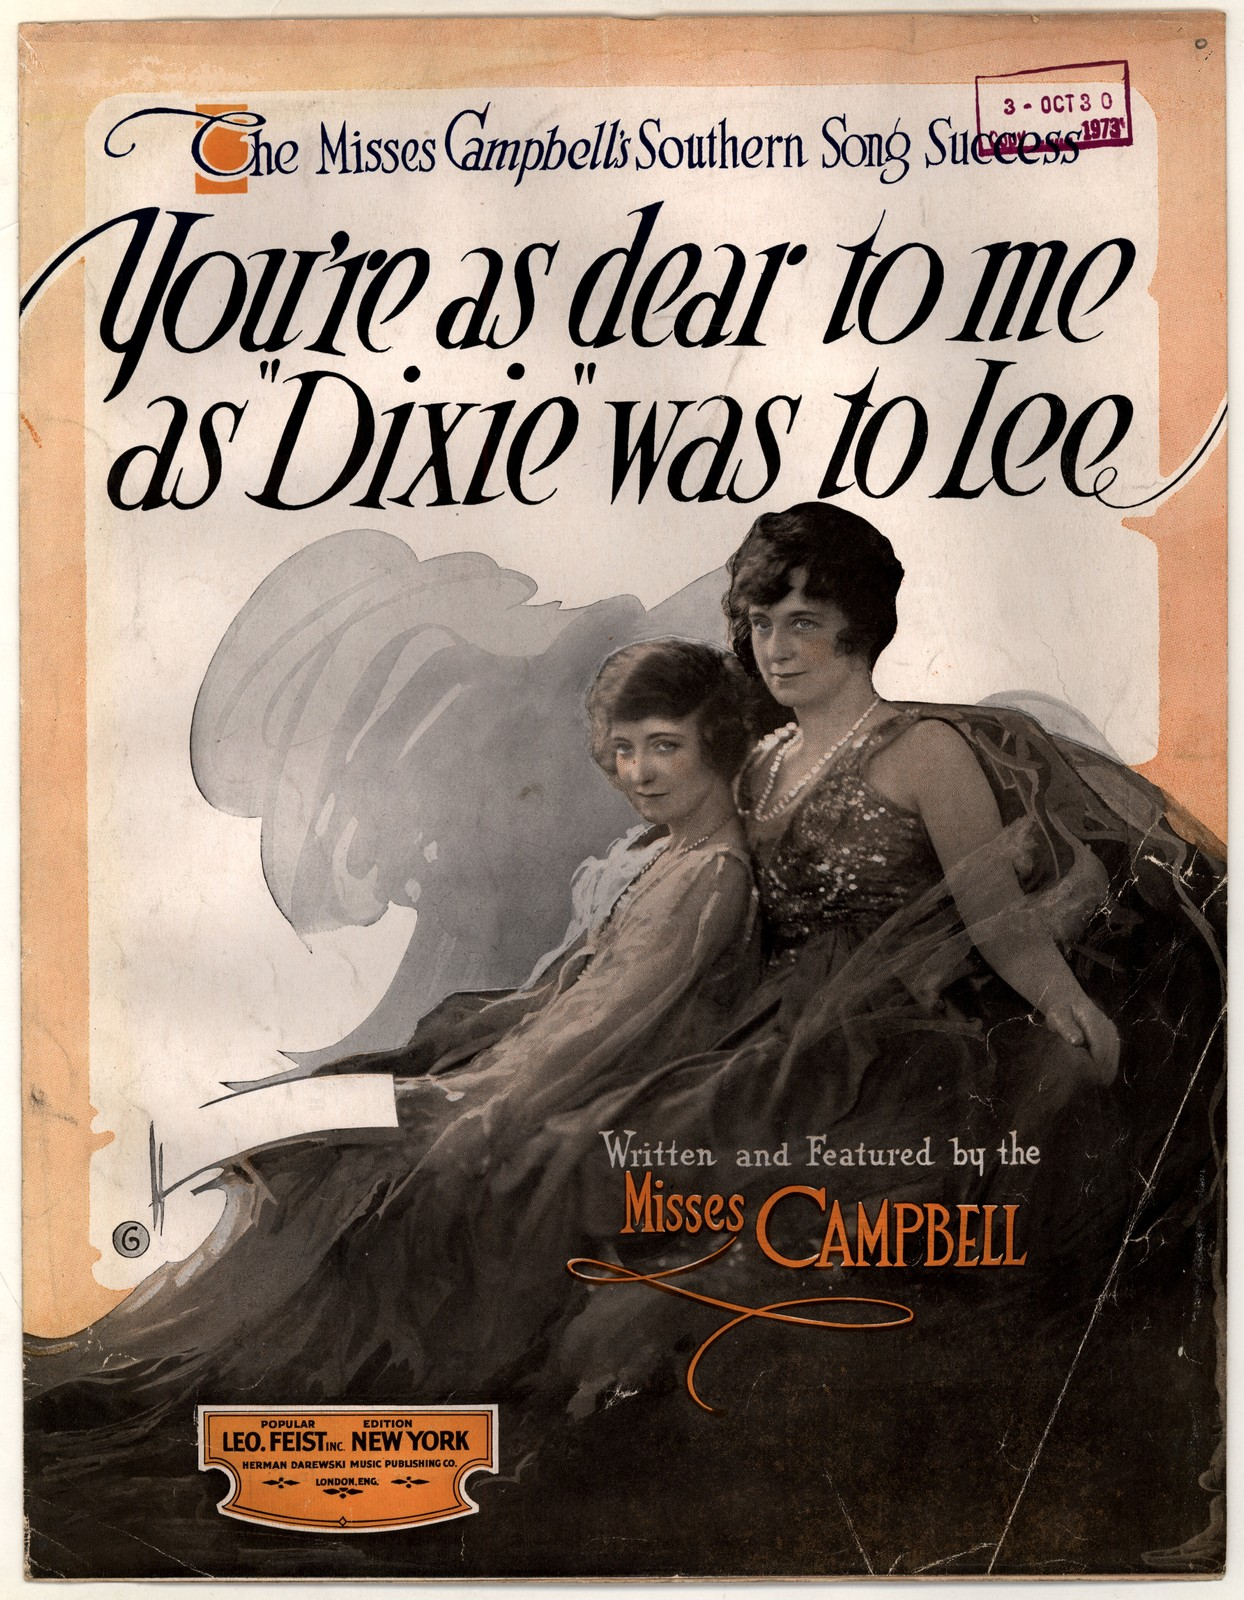 You're as dear to me, as Dixie was to Lee